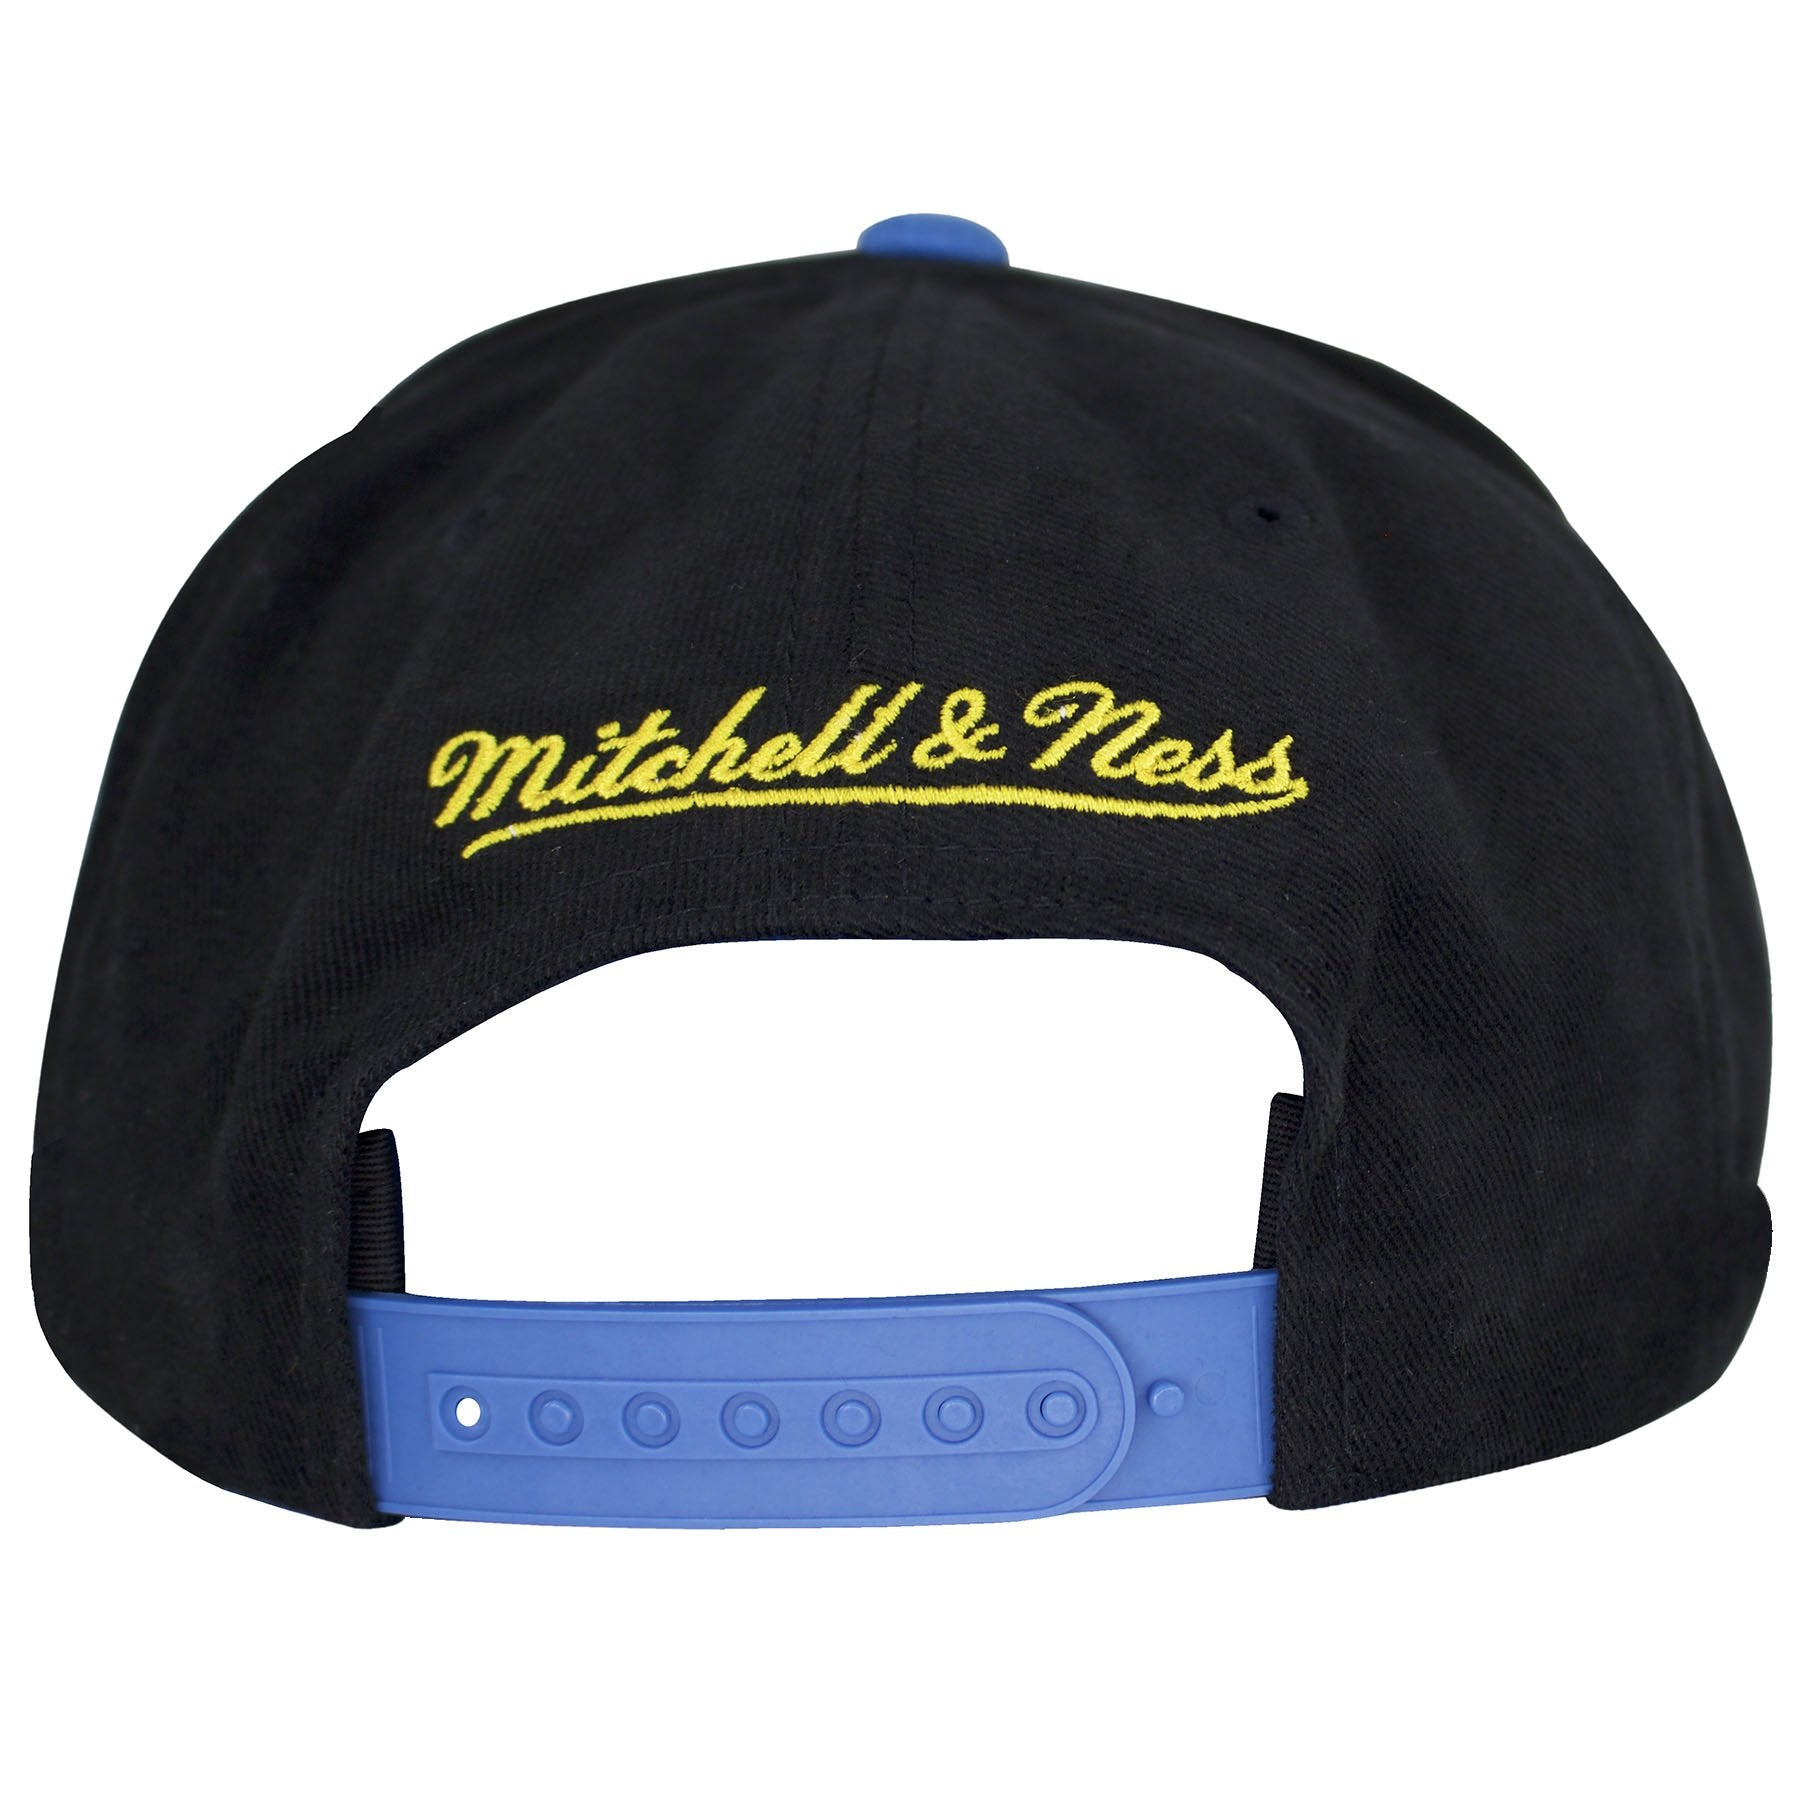 c3b32544143691 ... Right on the back is the Mitchell and Ness cursive writing embroidered  in yellow threading.